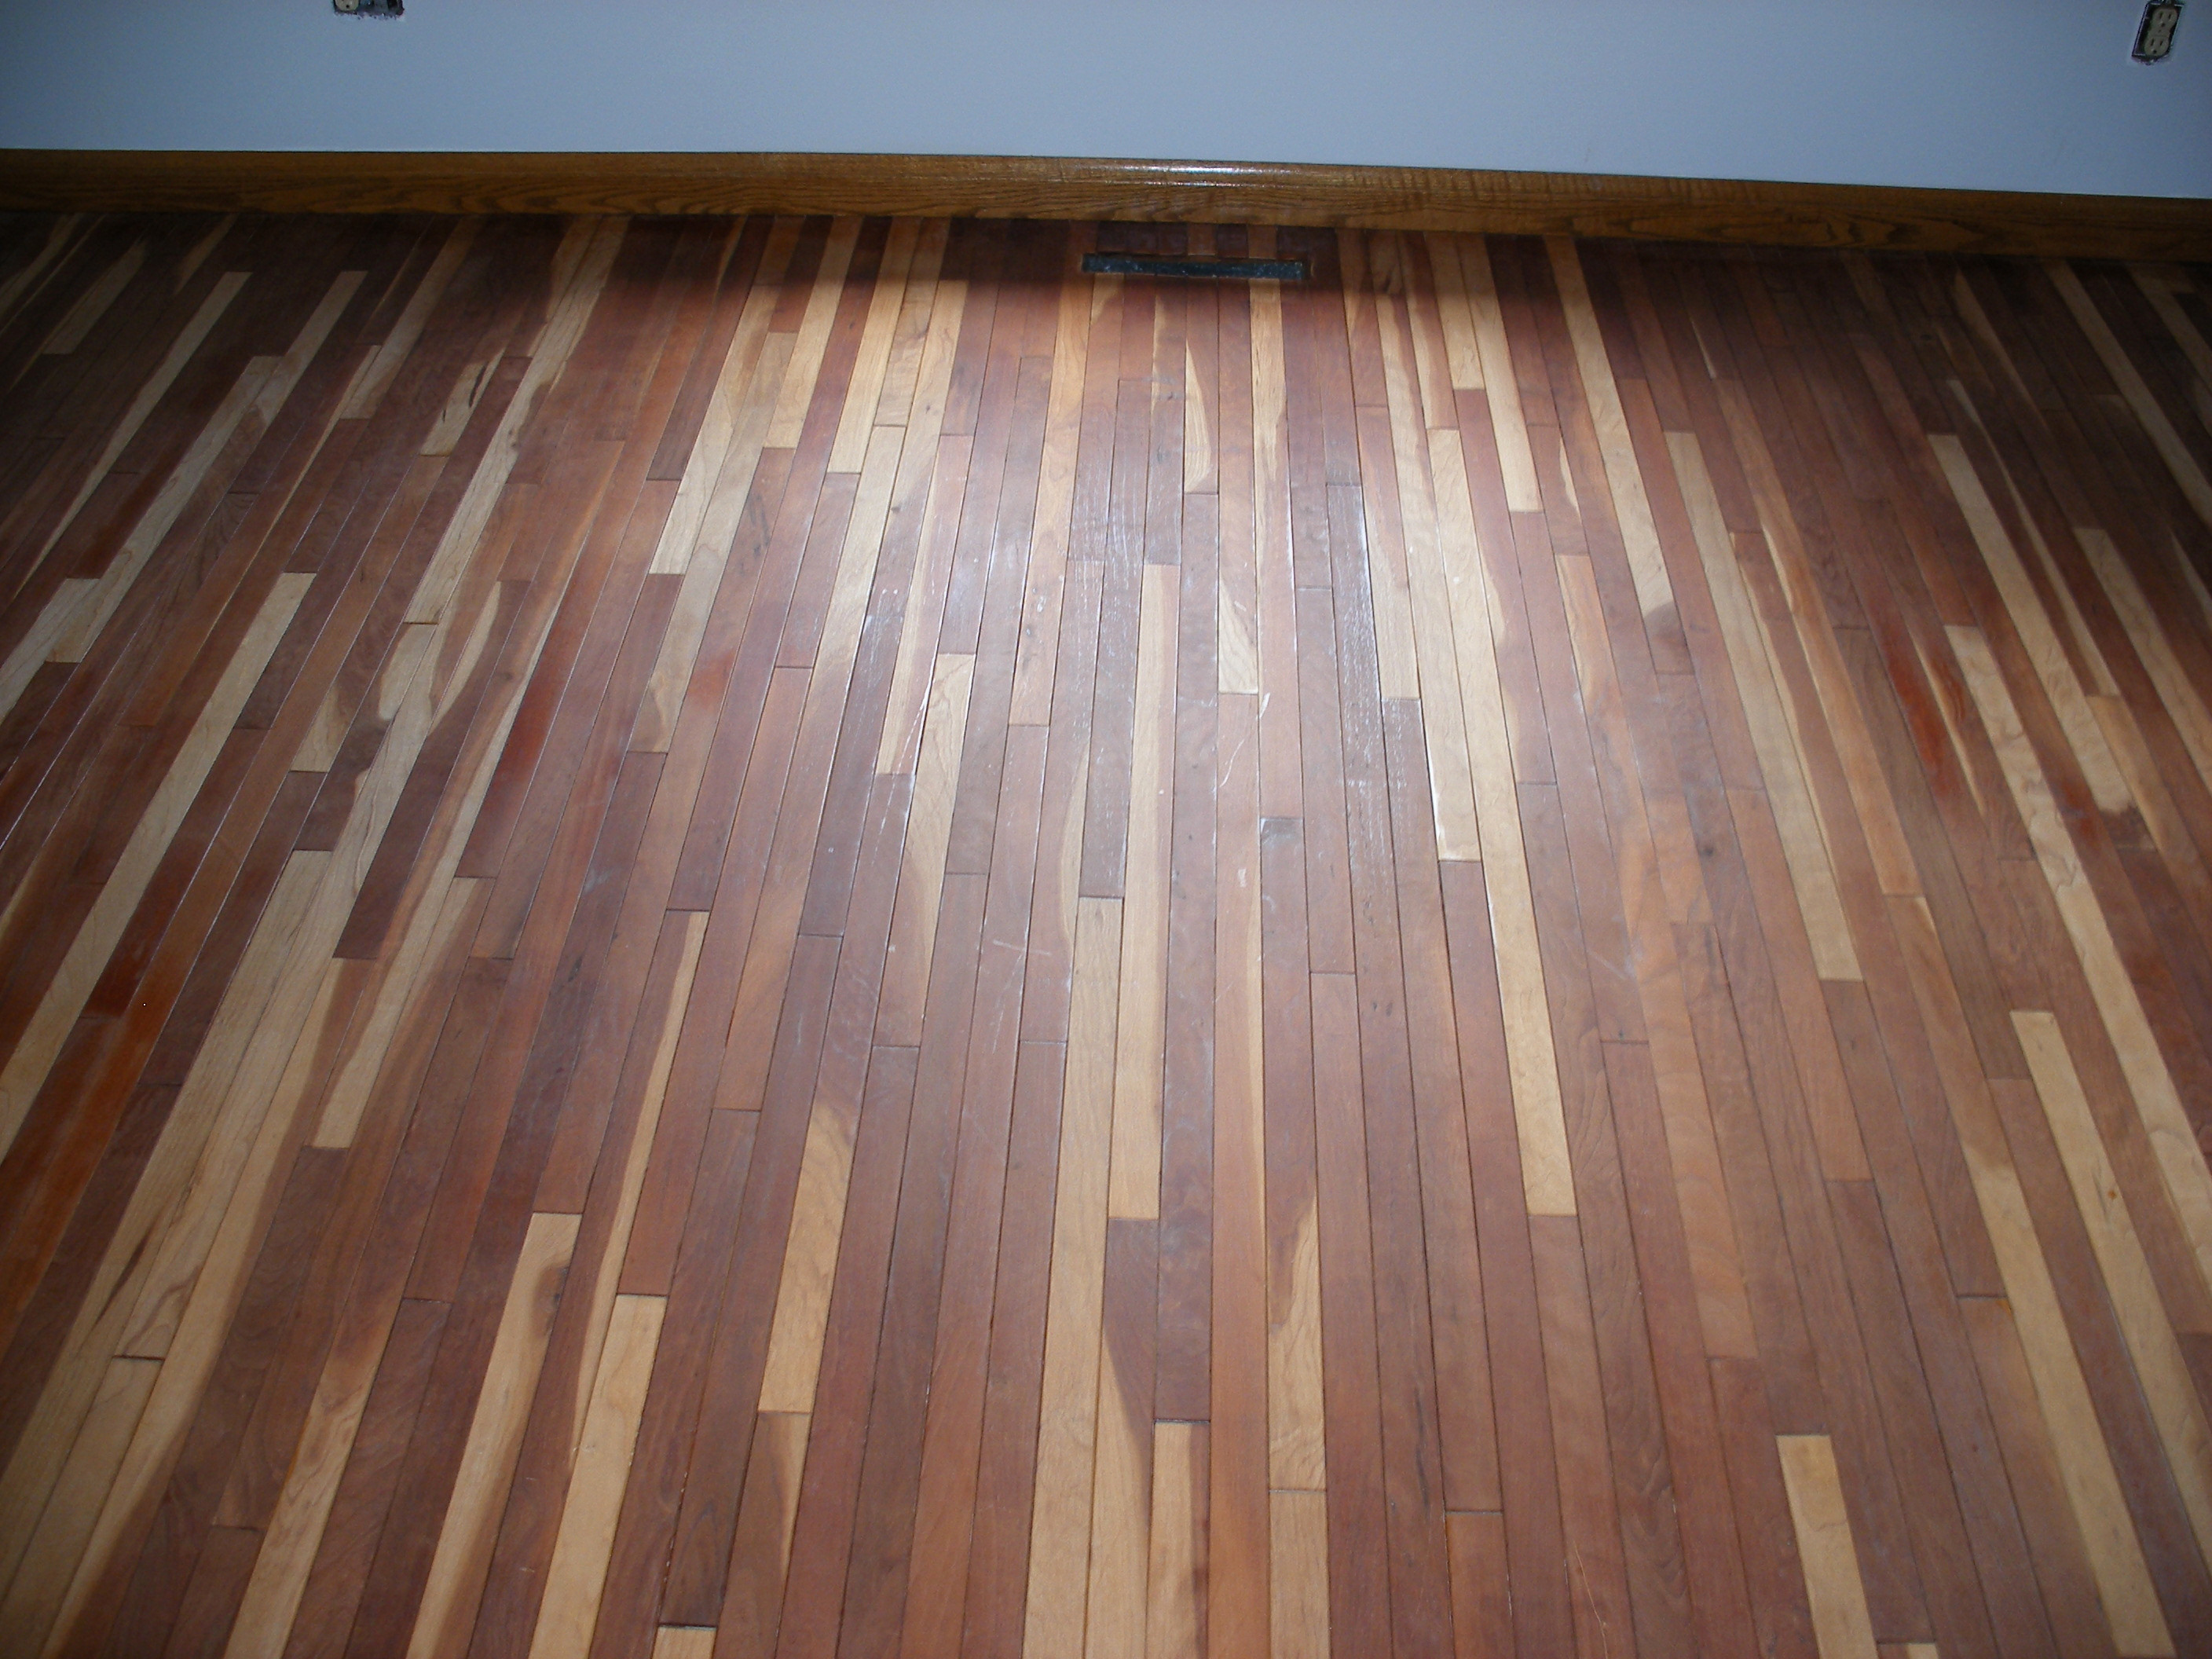 refinishing hardwood floors yourself without sanding of refinishing hardwood floors without sanding picture of how to regarding refinishing hardwood floors without sanding photo of 50 inspirational can you refinish